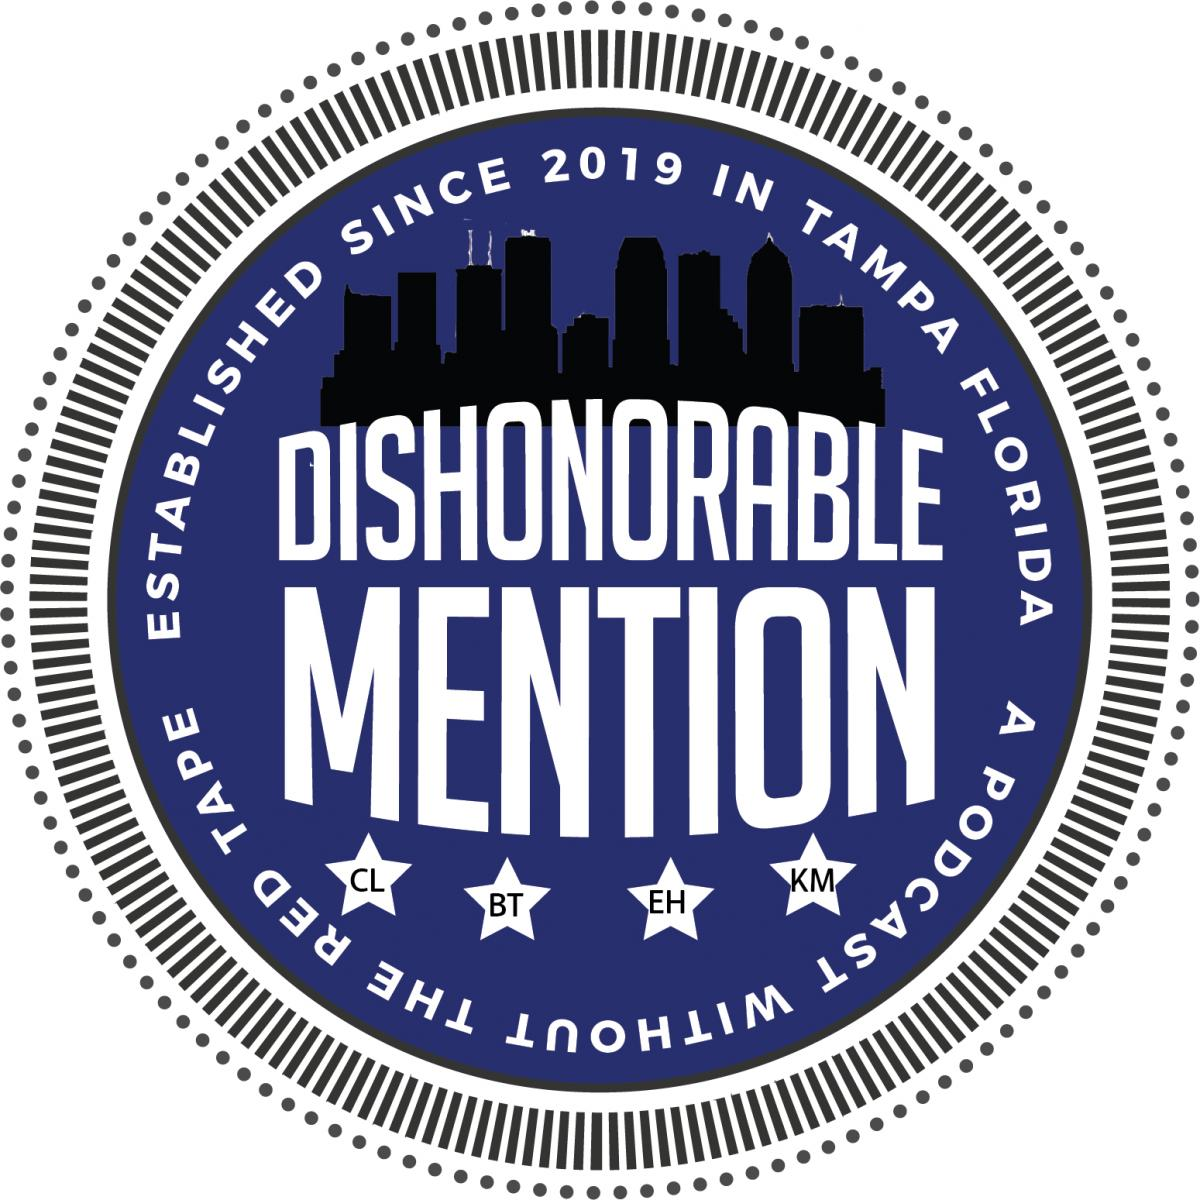 Dishonorable Mention Podcast Episode 15: The Death Penalty, Education Issues, and More TV Shows